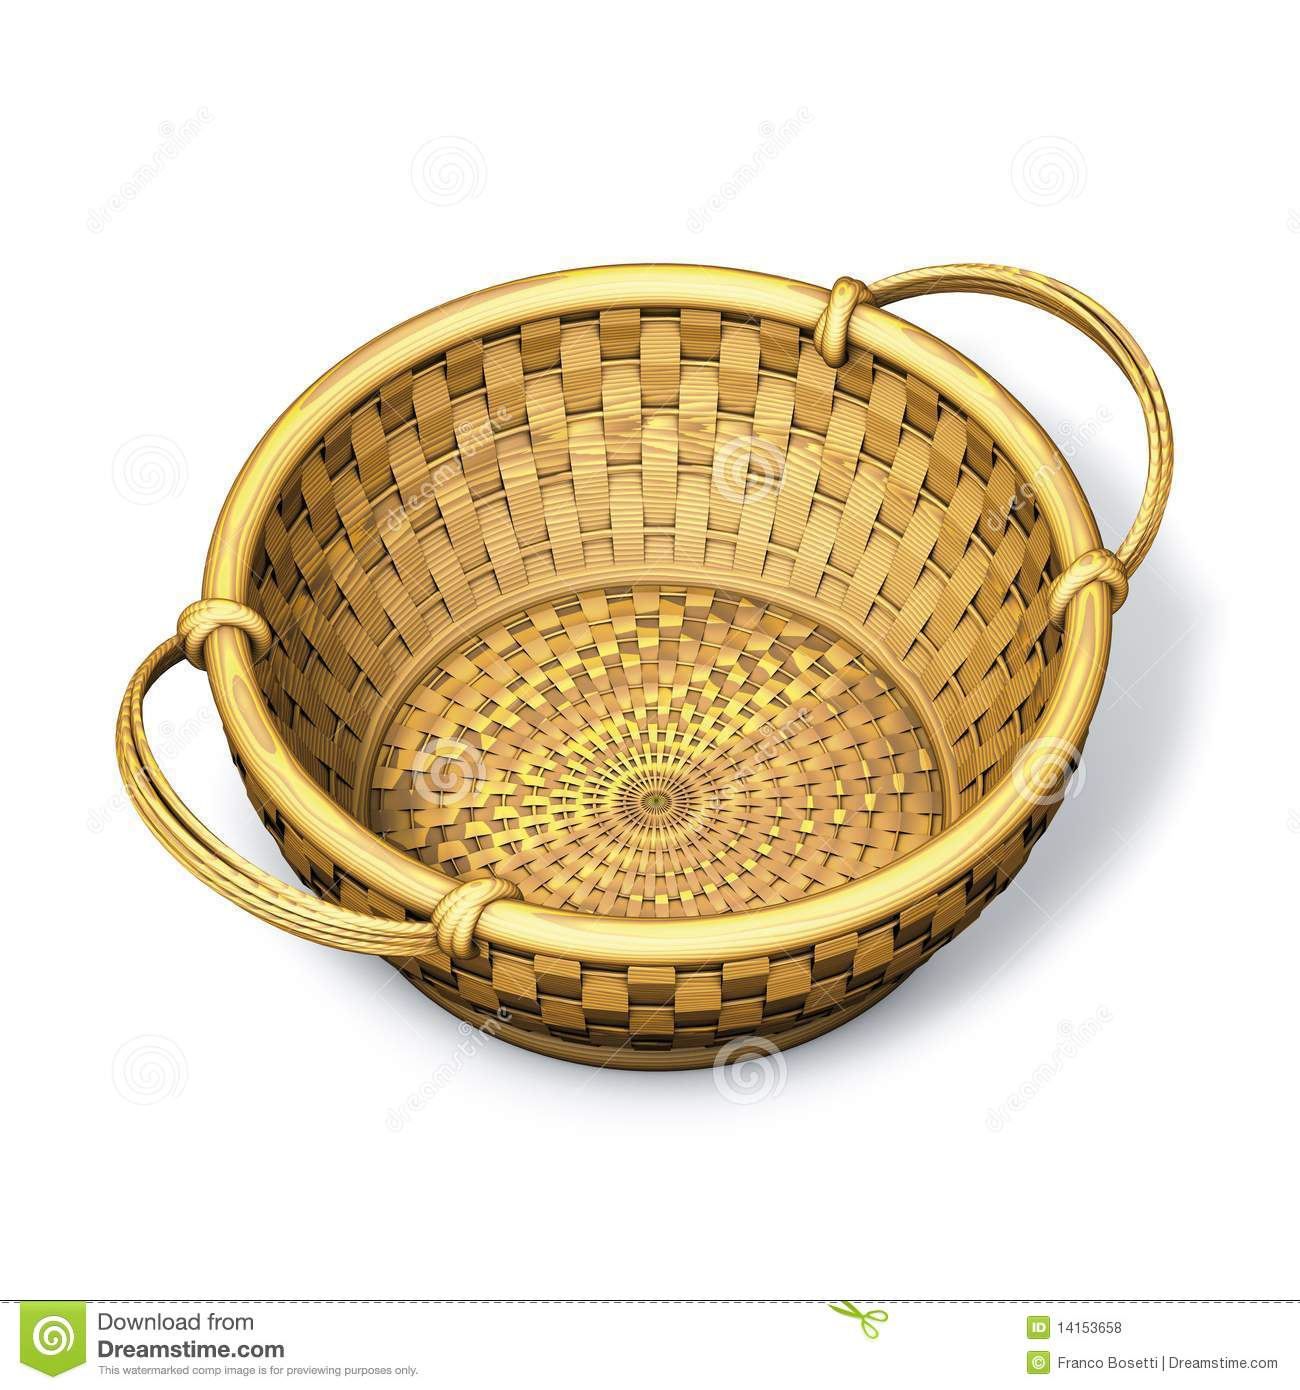 how to cut a hole in a wicker basket